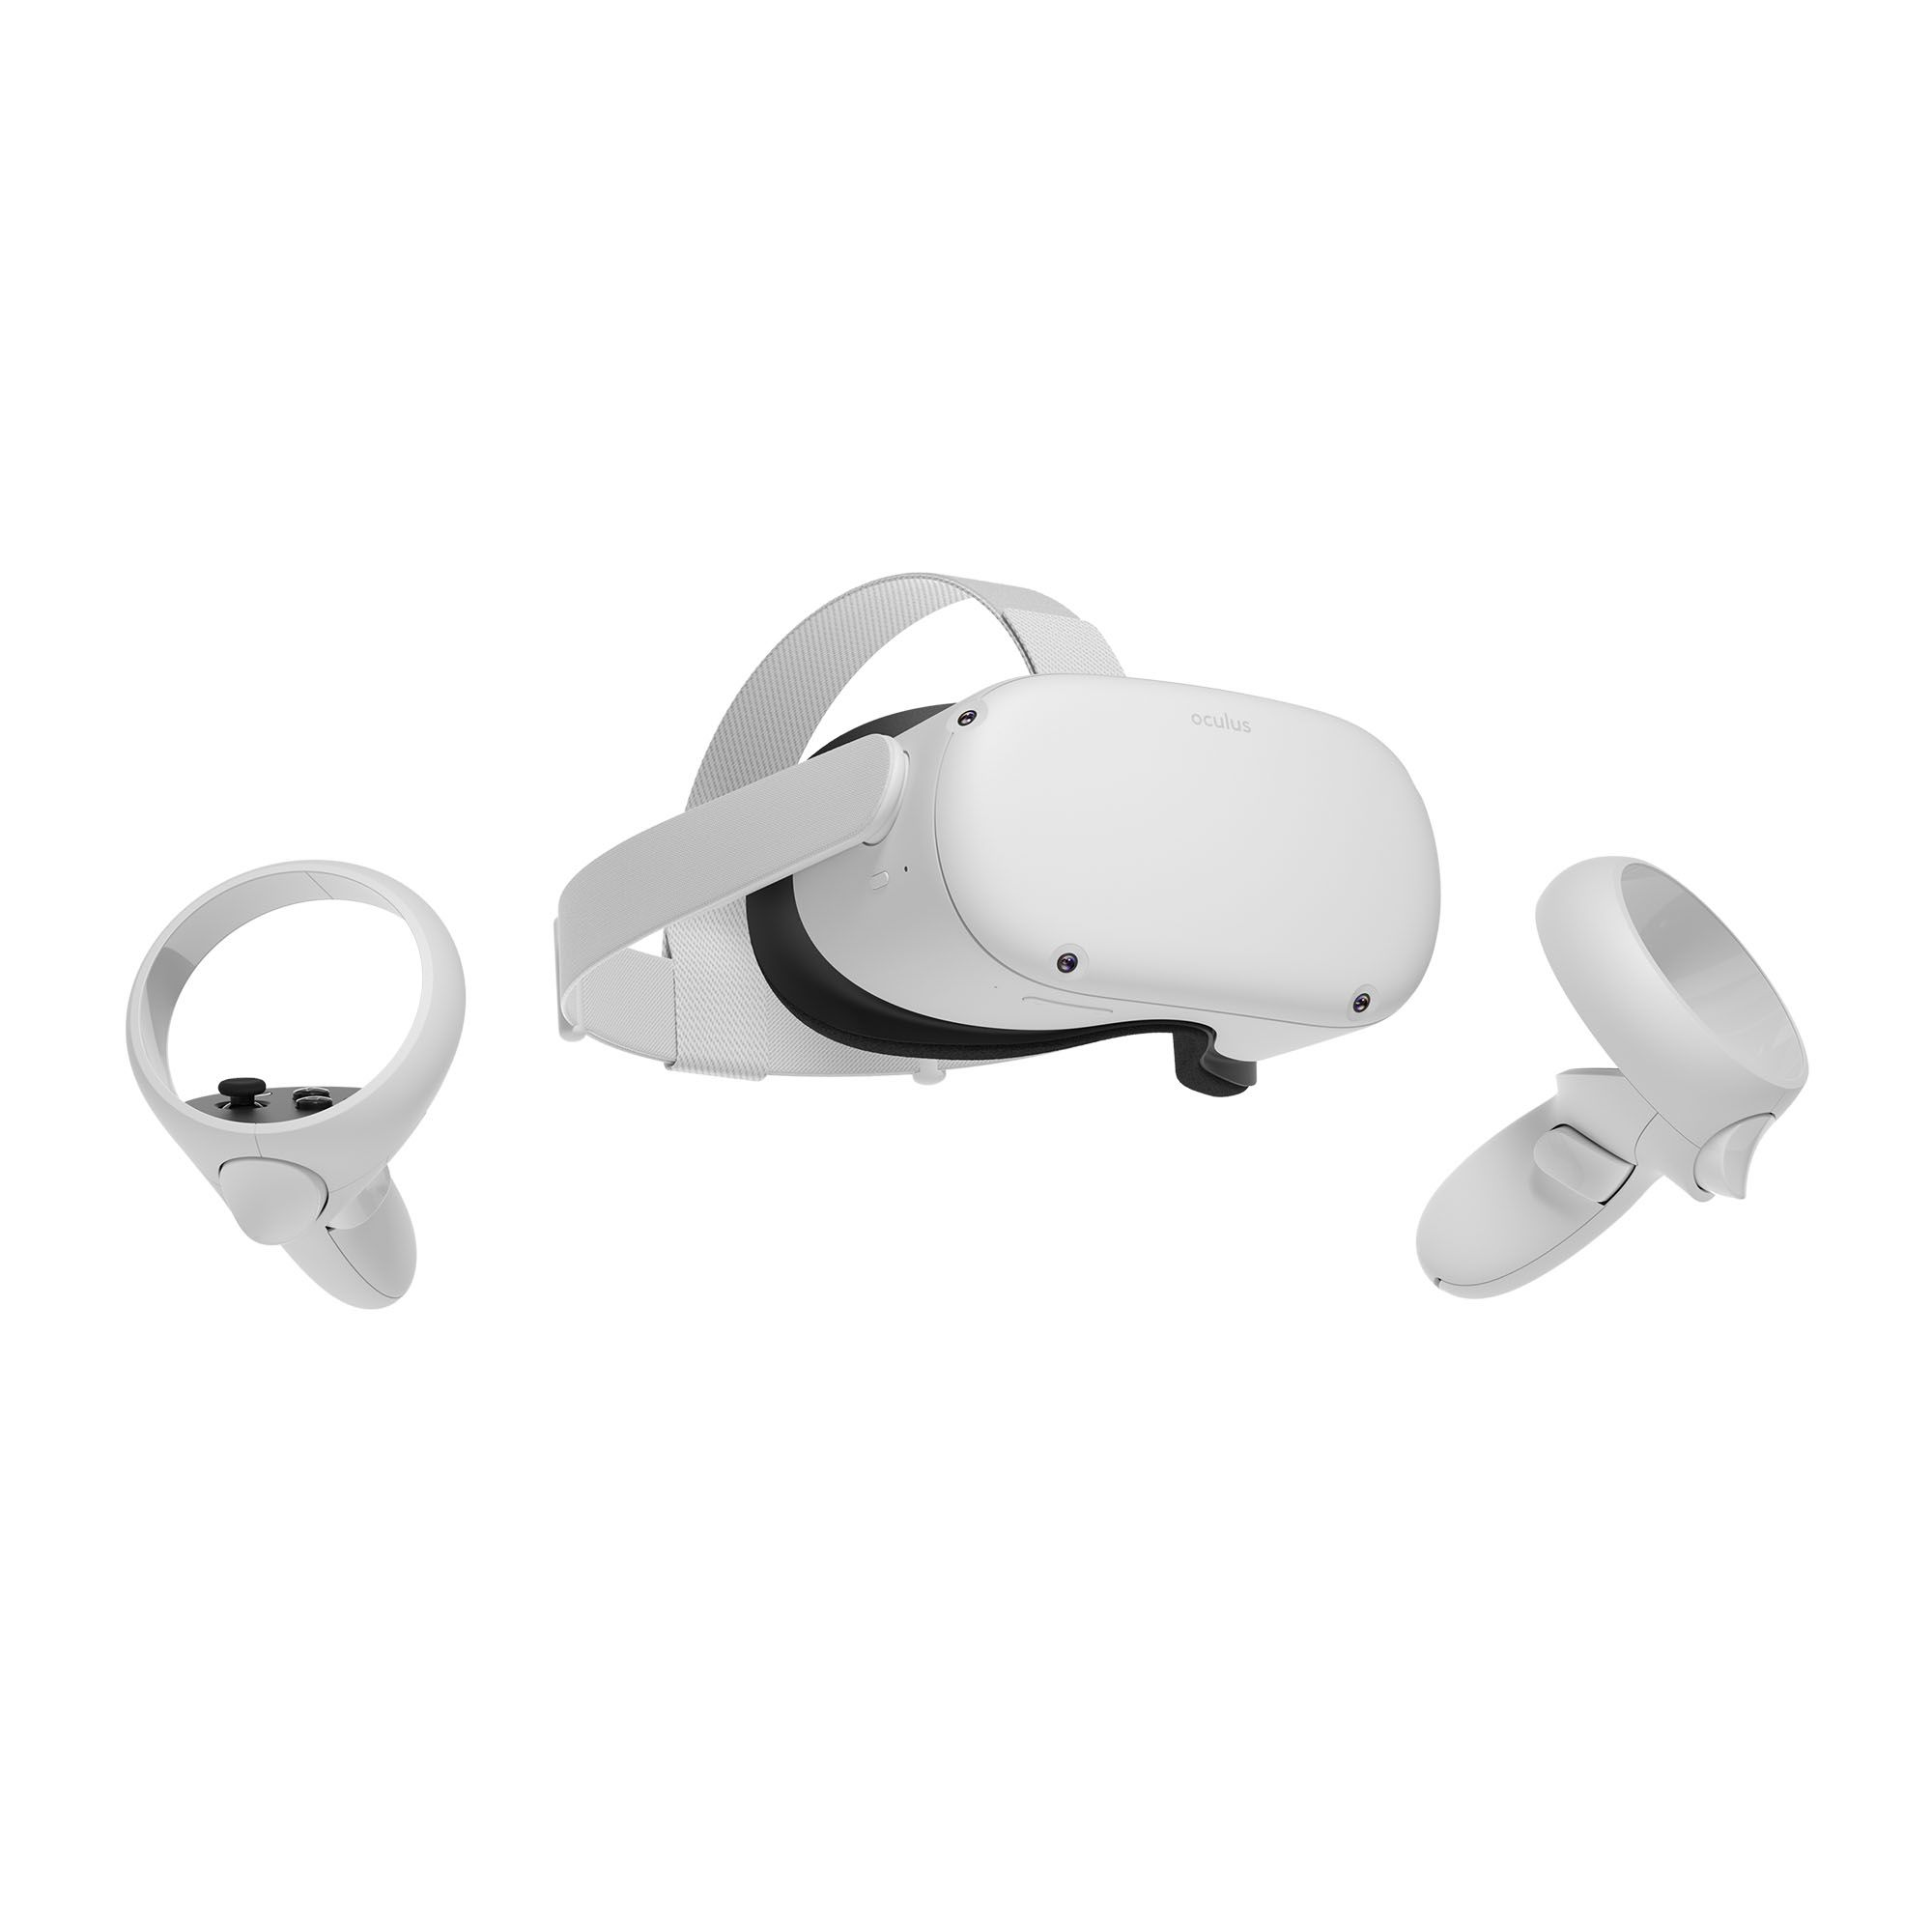 oculus quest 2 black friday - photo #4